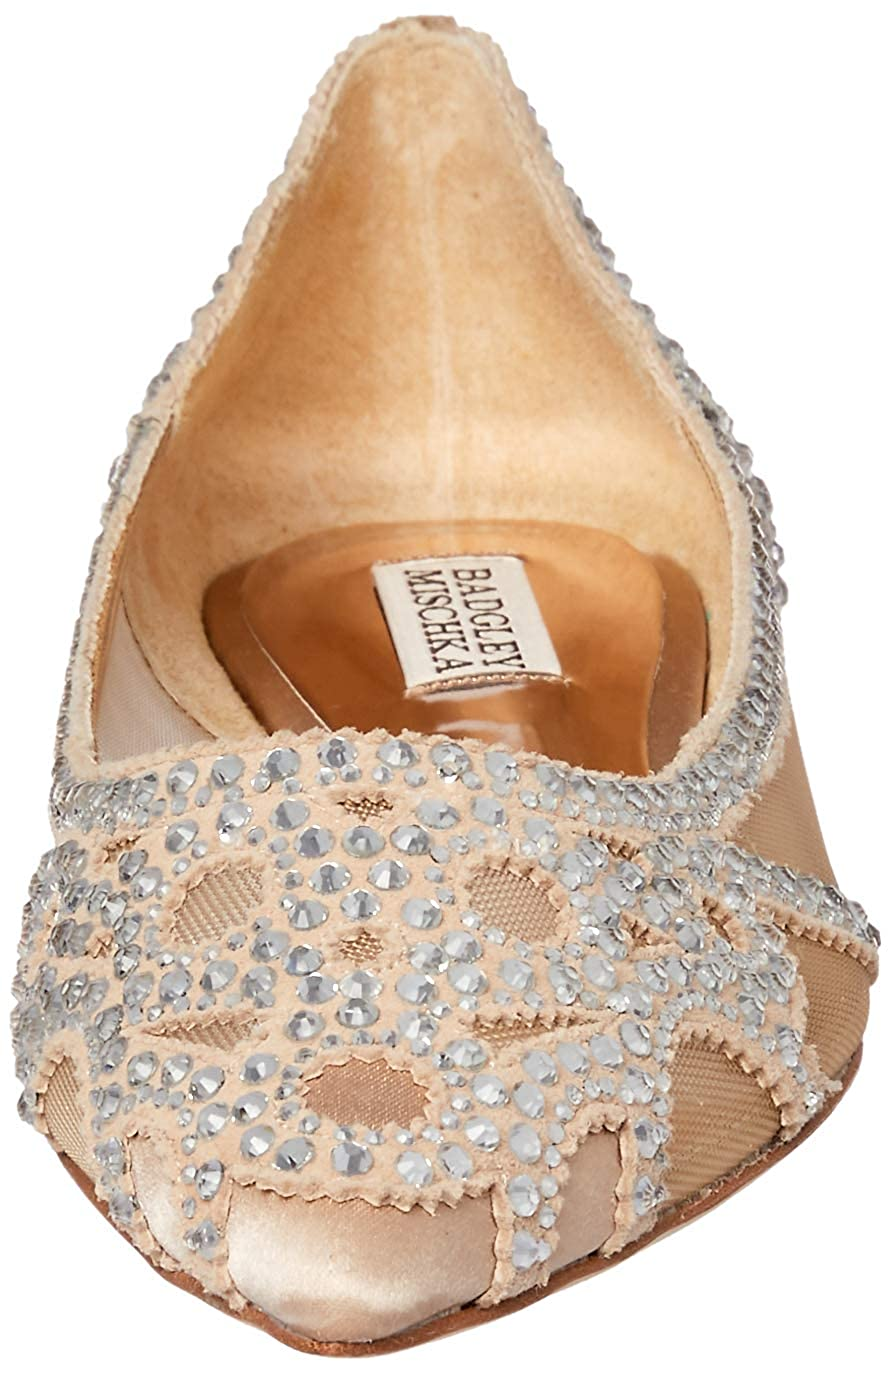 8e5bac36989 Amazon.com  Badgley Mischka Women s Gigi Pointed Toe Flat  Shoes